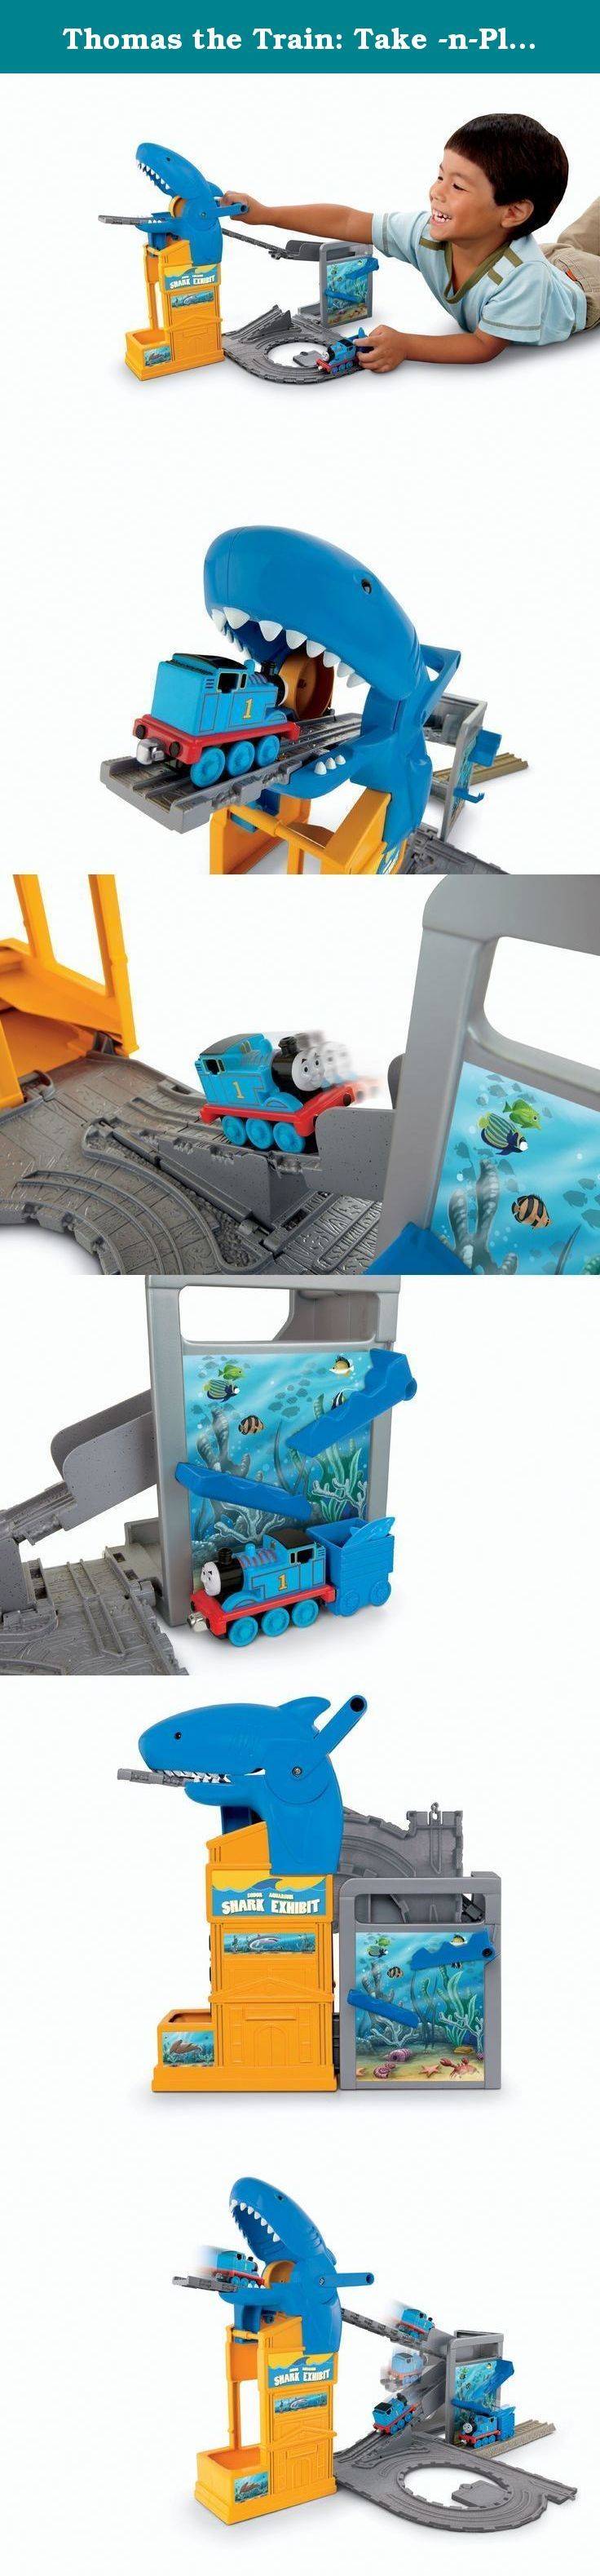 """Thomas the Train: Take -n-Play Shark Exhibit. Fast-Paced Fun in a Daring Adventure Thomas' Shark Exhibit is a Take-n-Play portable fold-out railway playset that combines the fun of train play with kids' fascination with sharks. Steer the die-cast metal Thomas through the exhibit entryway. As Thomas enters the exhibit he is sent rolling down the tracks. As he passes by Thomas activates the """"shark drop"""" which releases the creature from its holding tank and into Thomas' cargo car. From there..."""